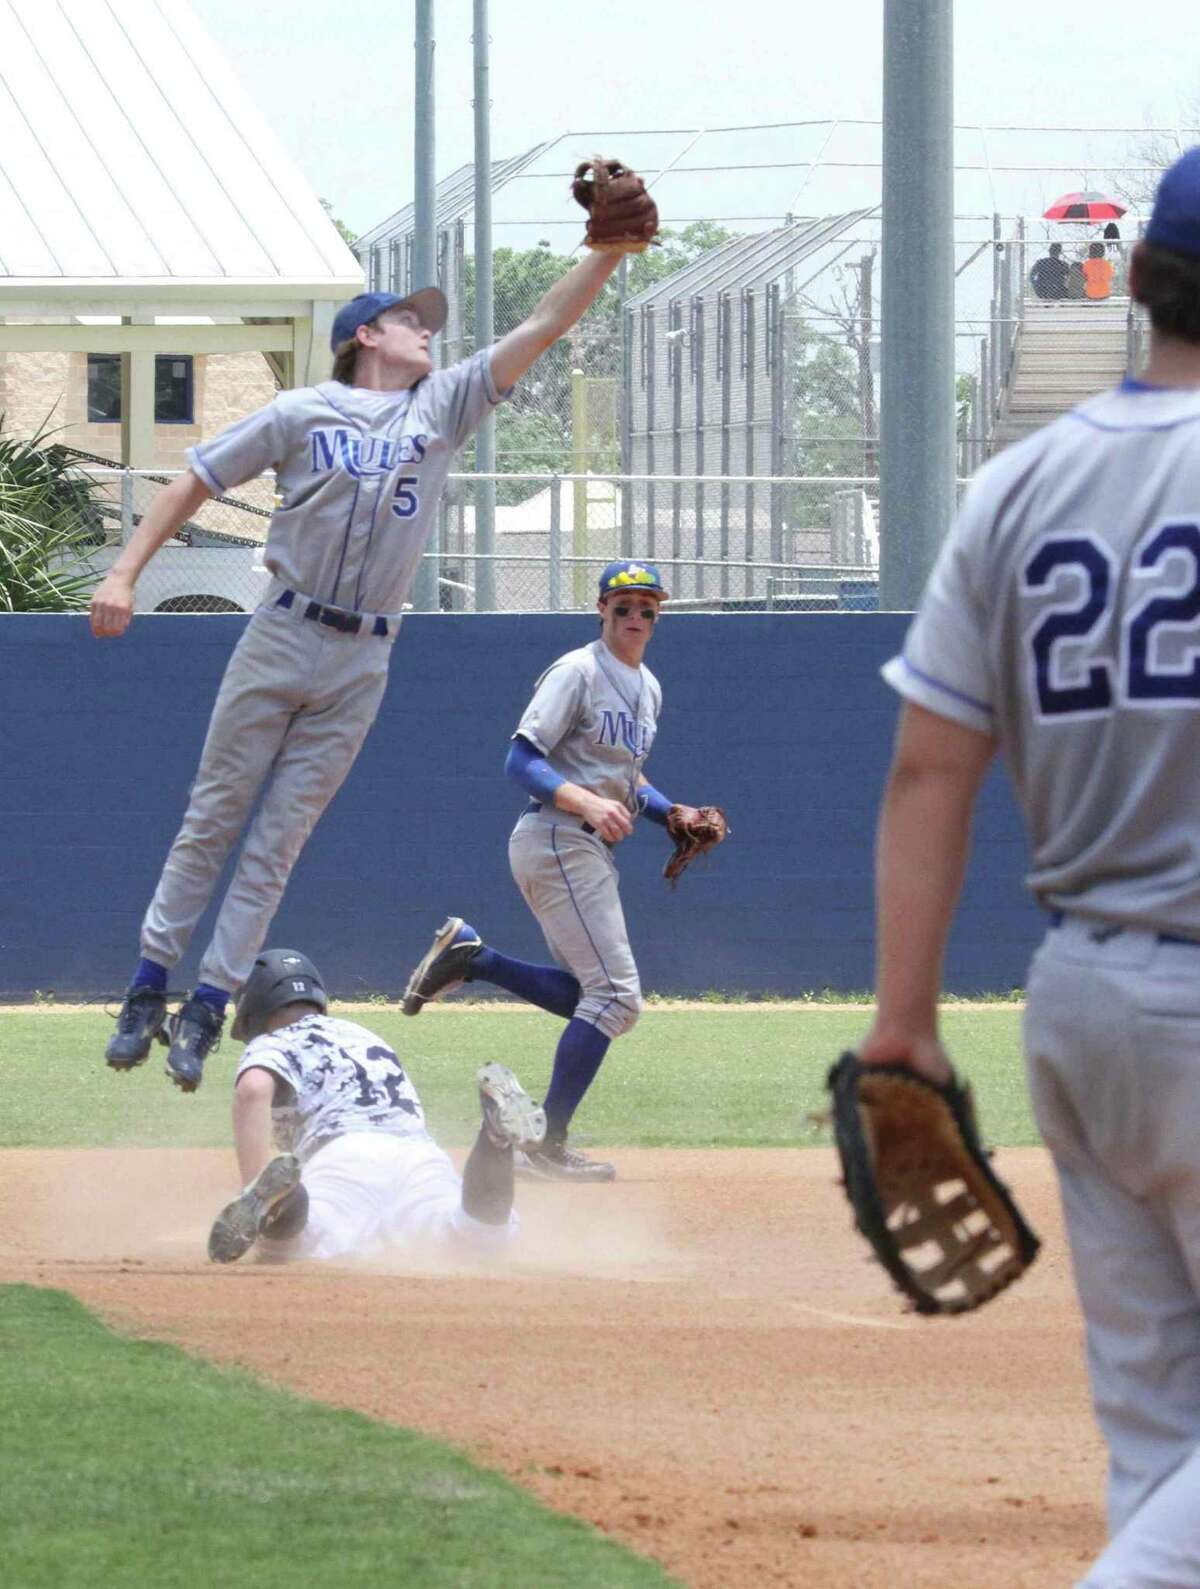 Alamo Heights junior Kalen Brockwell nearly snags the throw to keep Boerne Champion senior Trevor Harlos from advancing on base in a Class 4A third-round playoff game. The Chargers knocked out the Mules in two games, 12-1 Friday, and 10-2 Saturday.